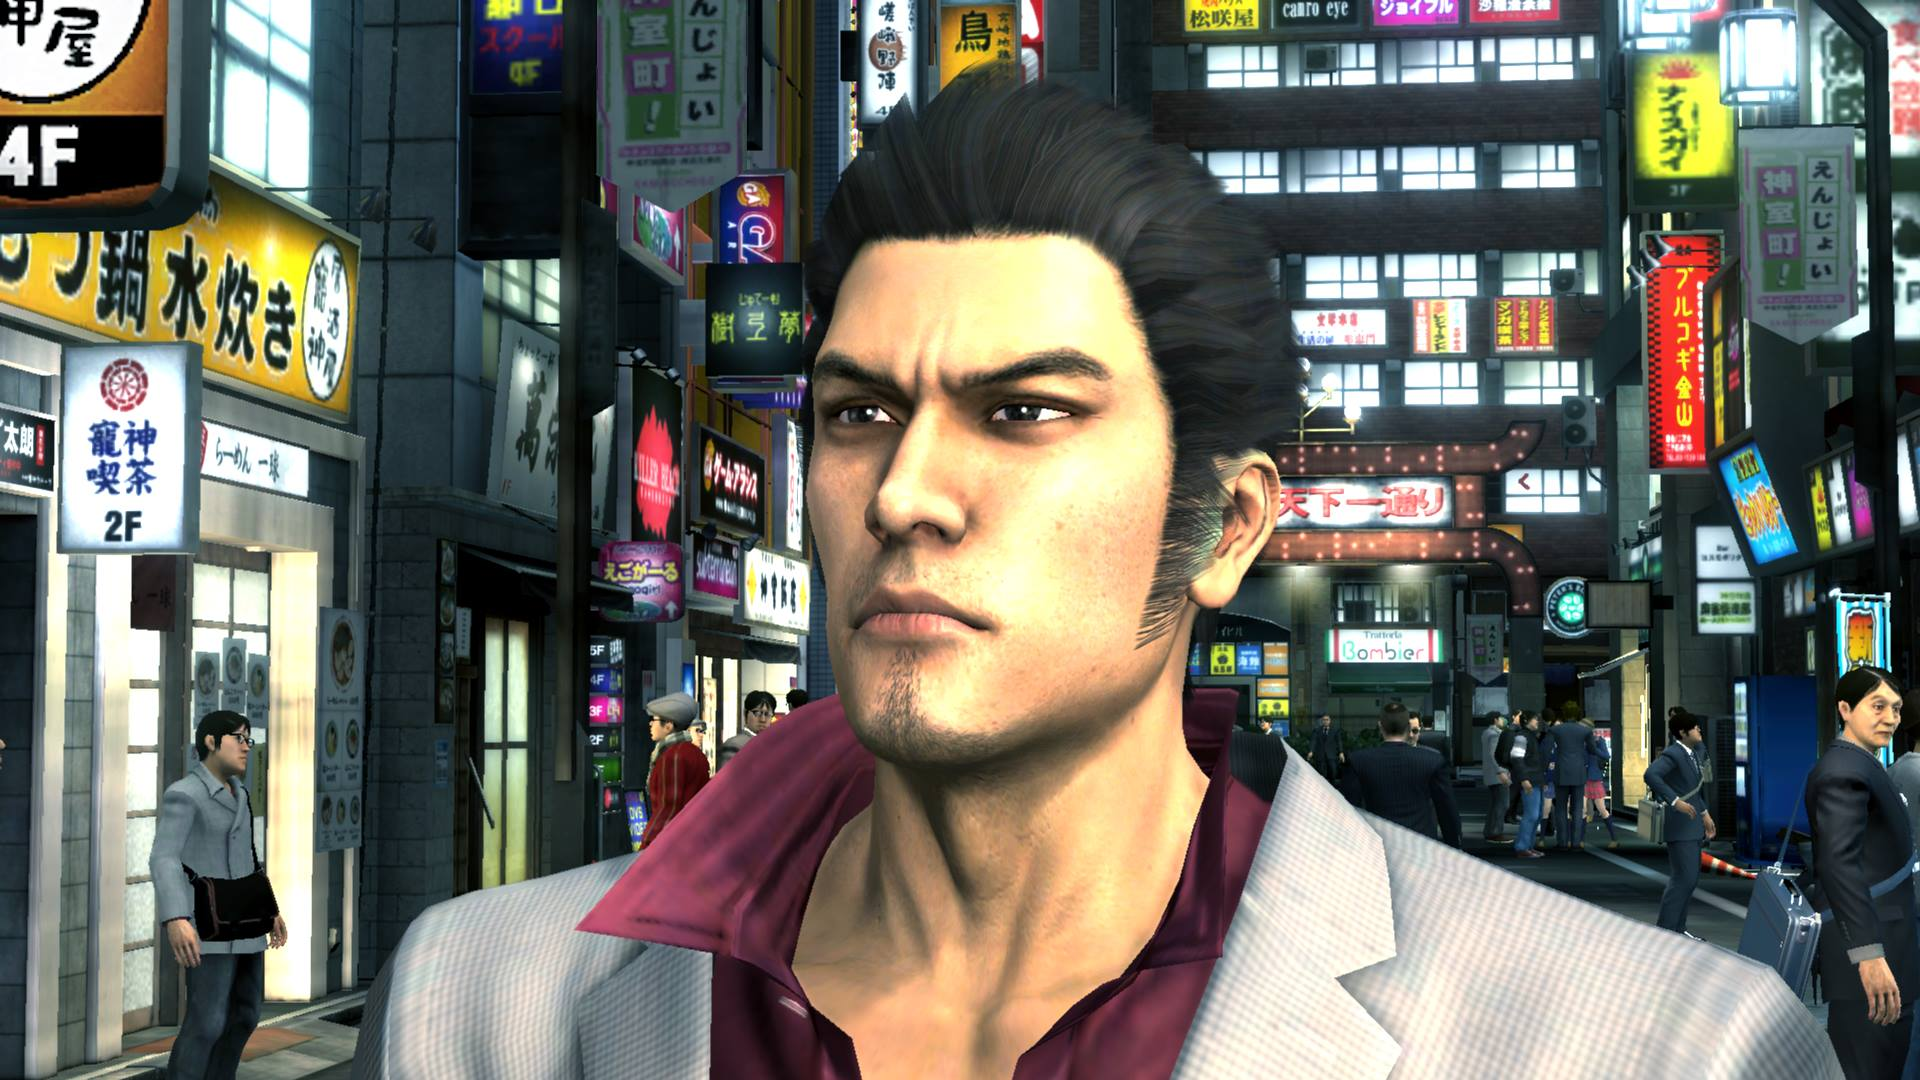 YAKUZA 3,4,5 Remaster on PS4 1526981620-image